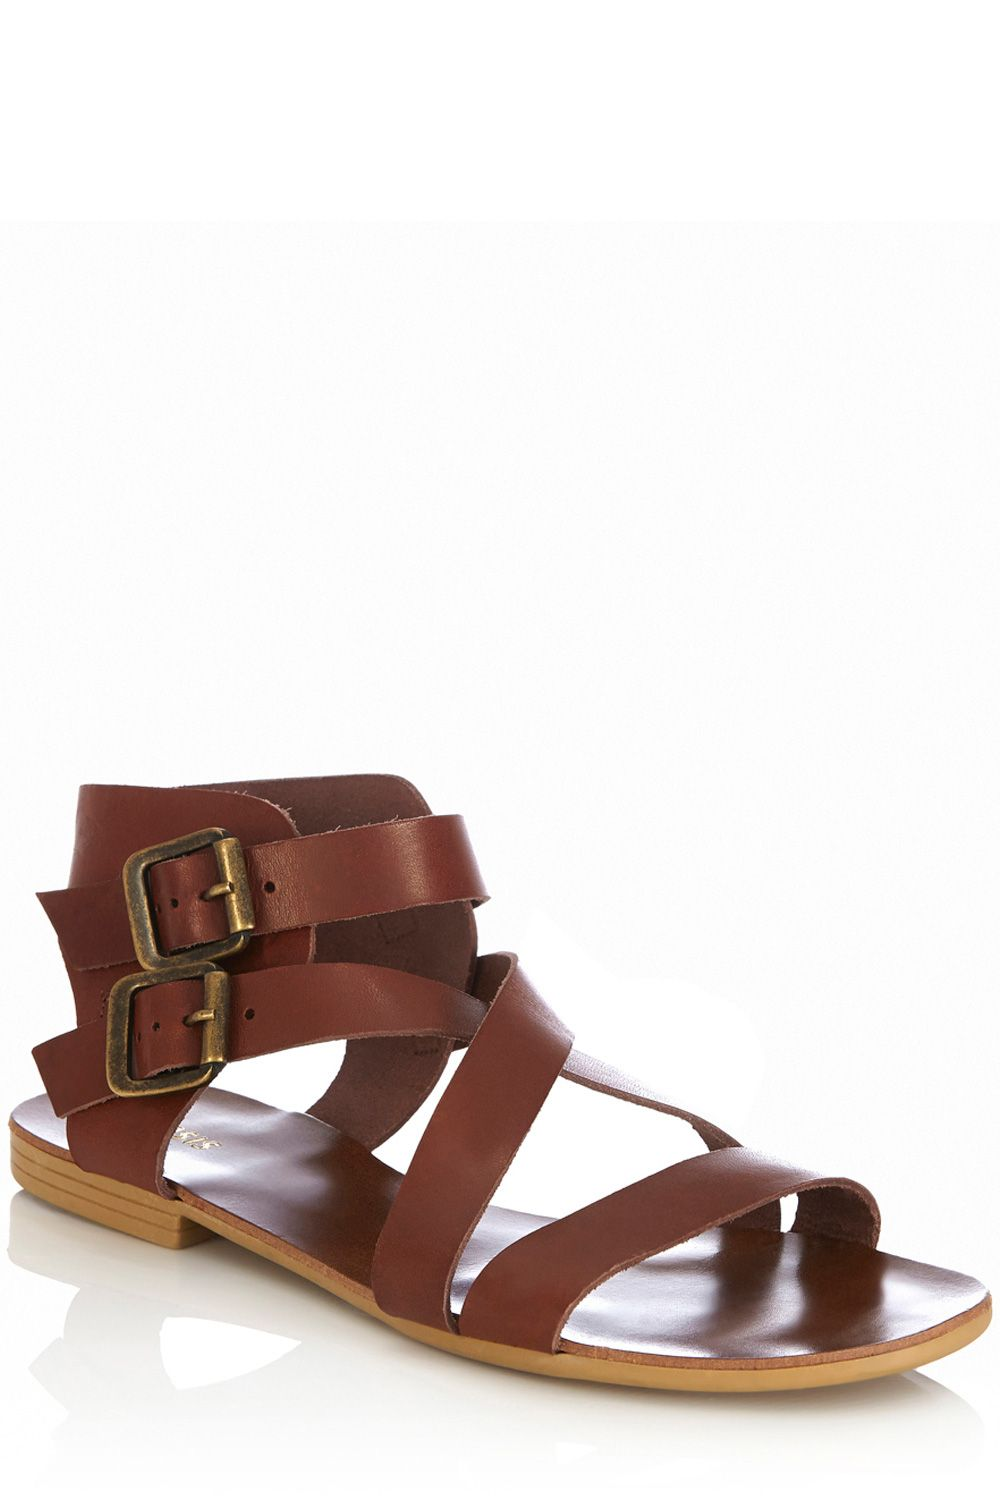 Ava strappy leather sandals